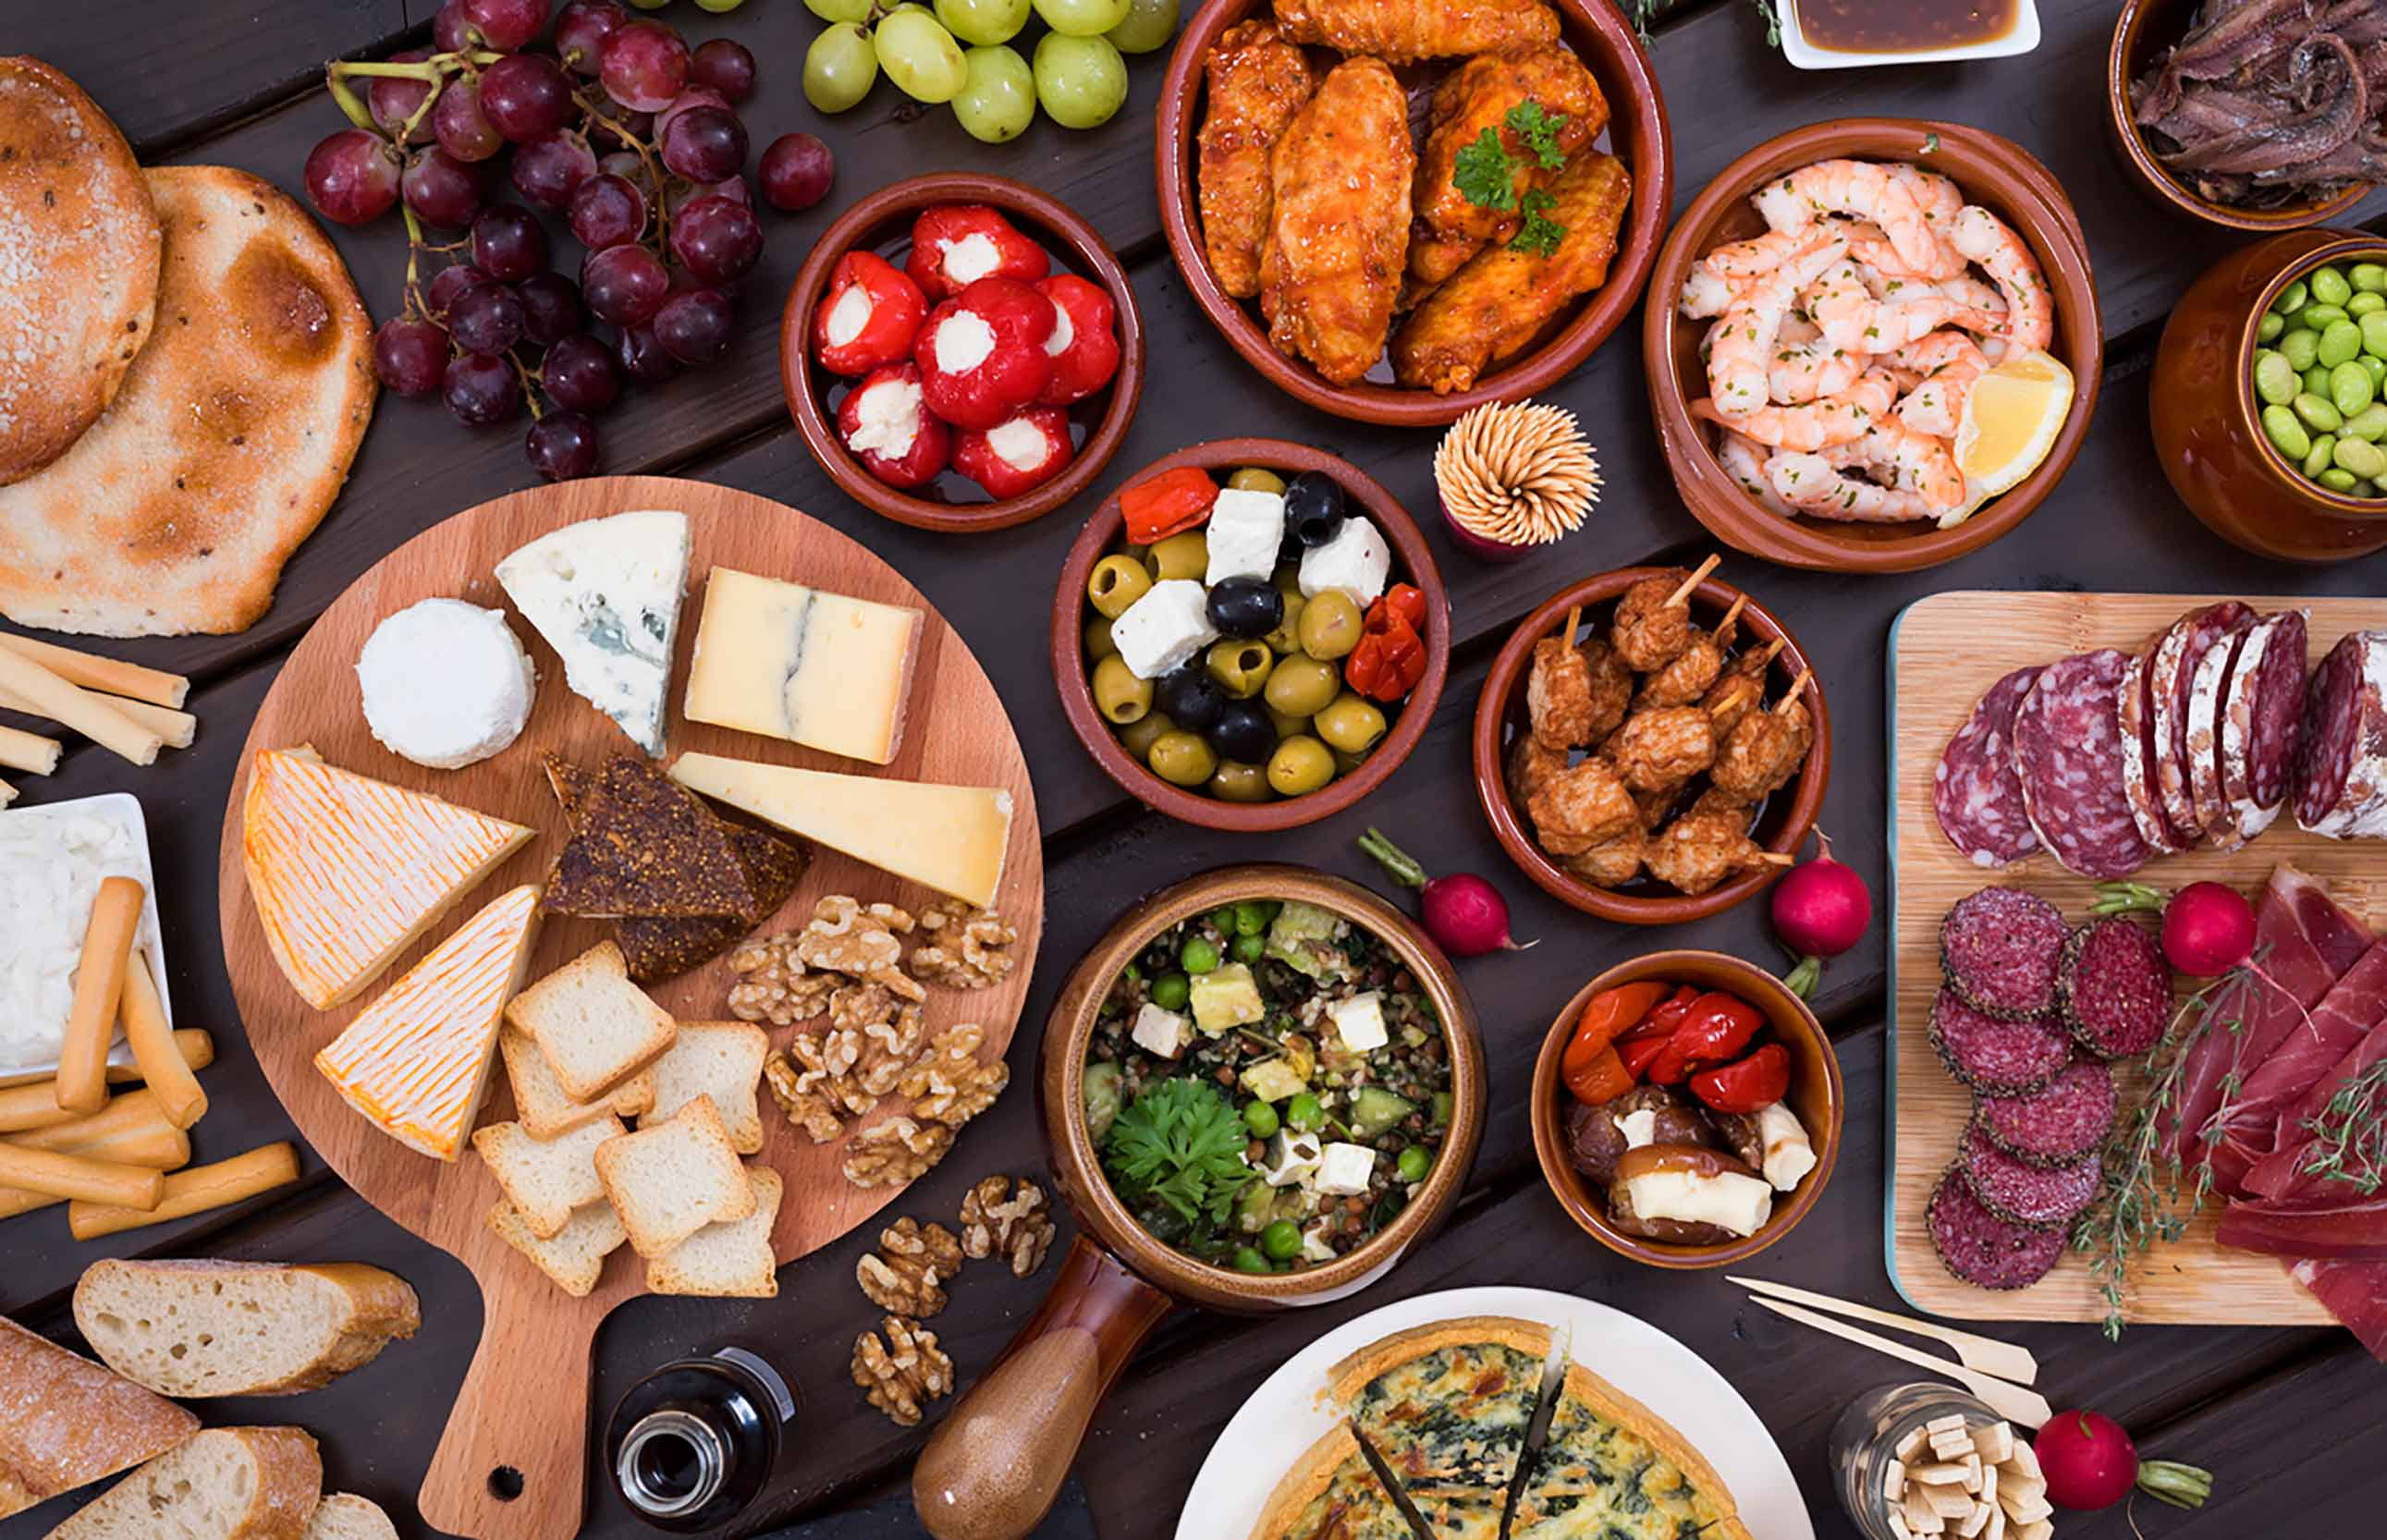 If you love to eat, you'll want to check out our top picks for some of the best foods the world has to offer.